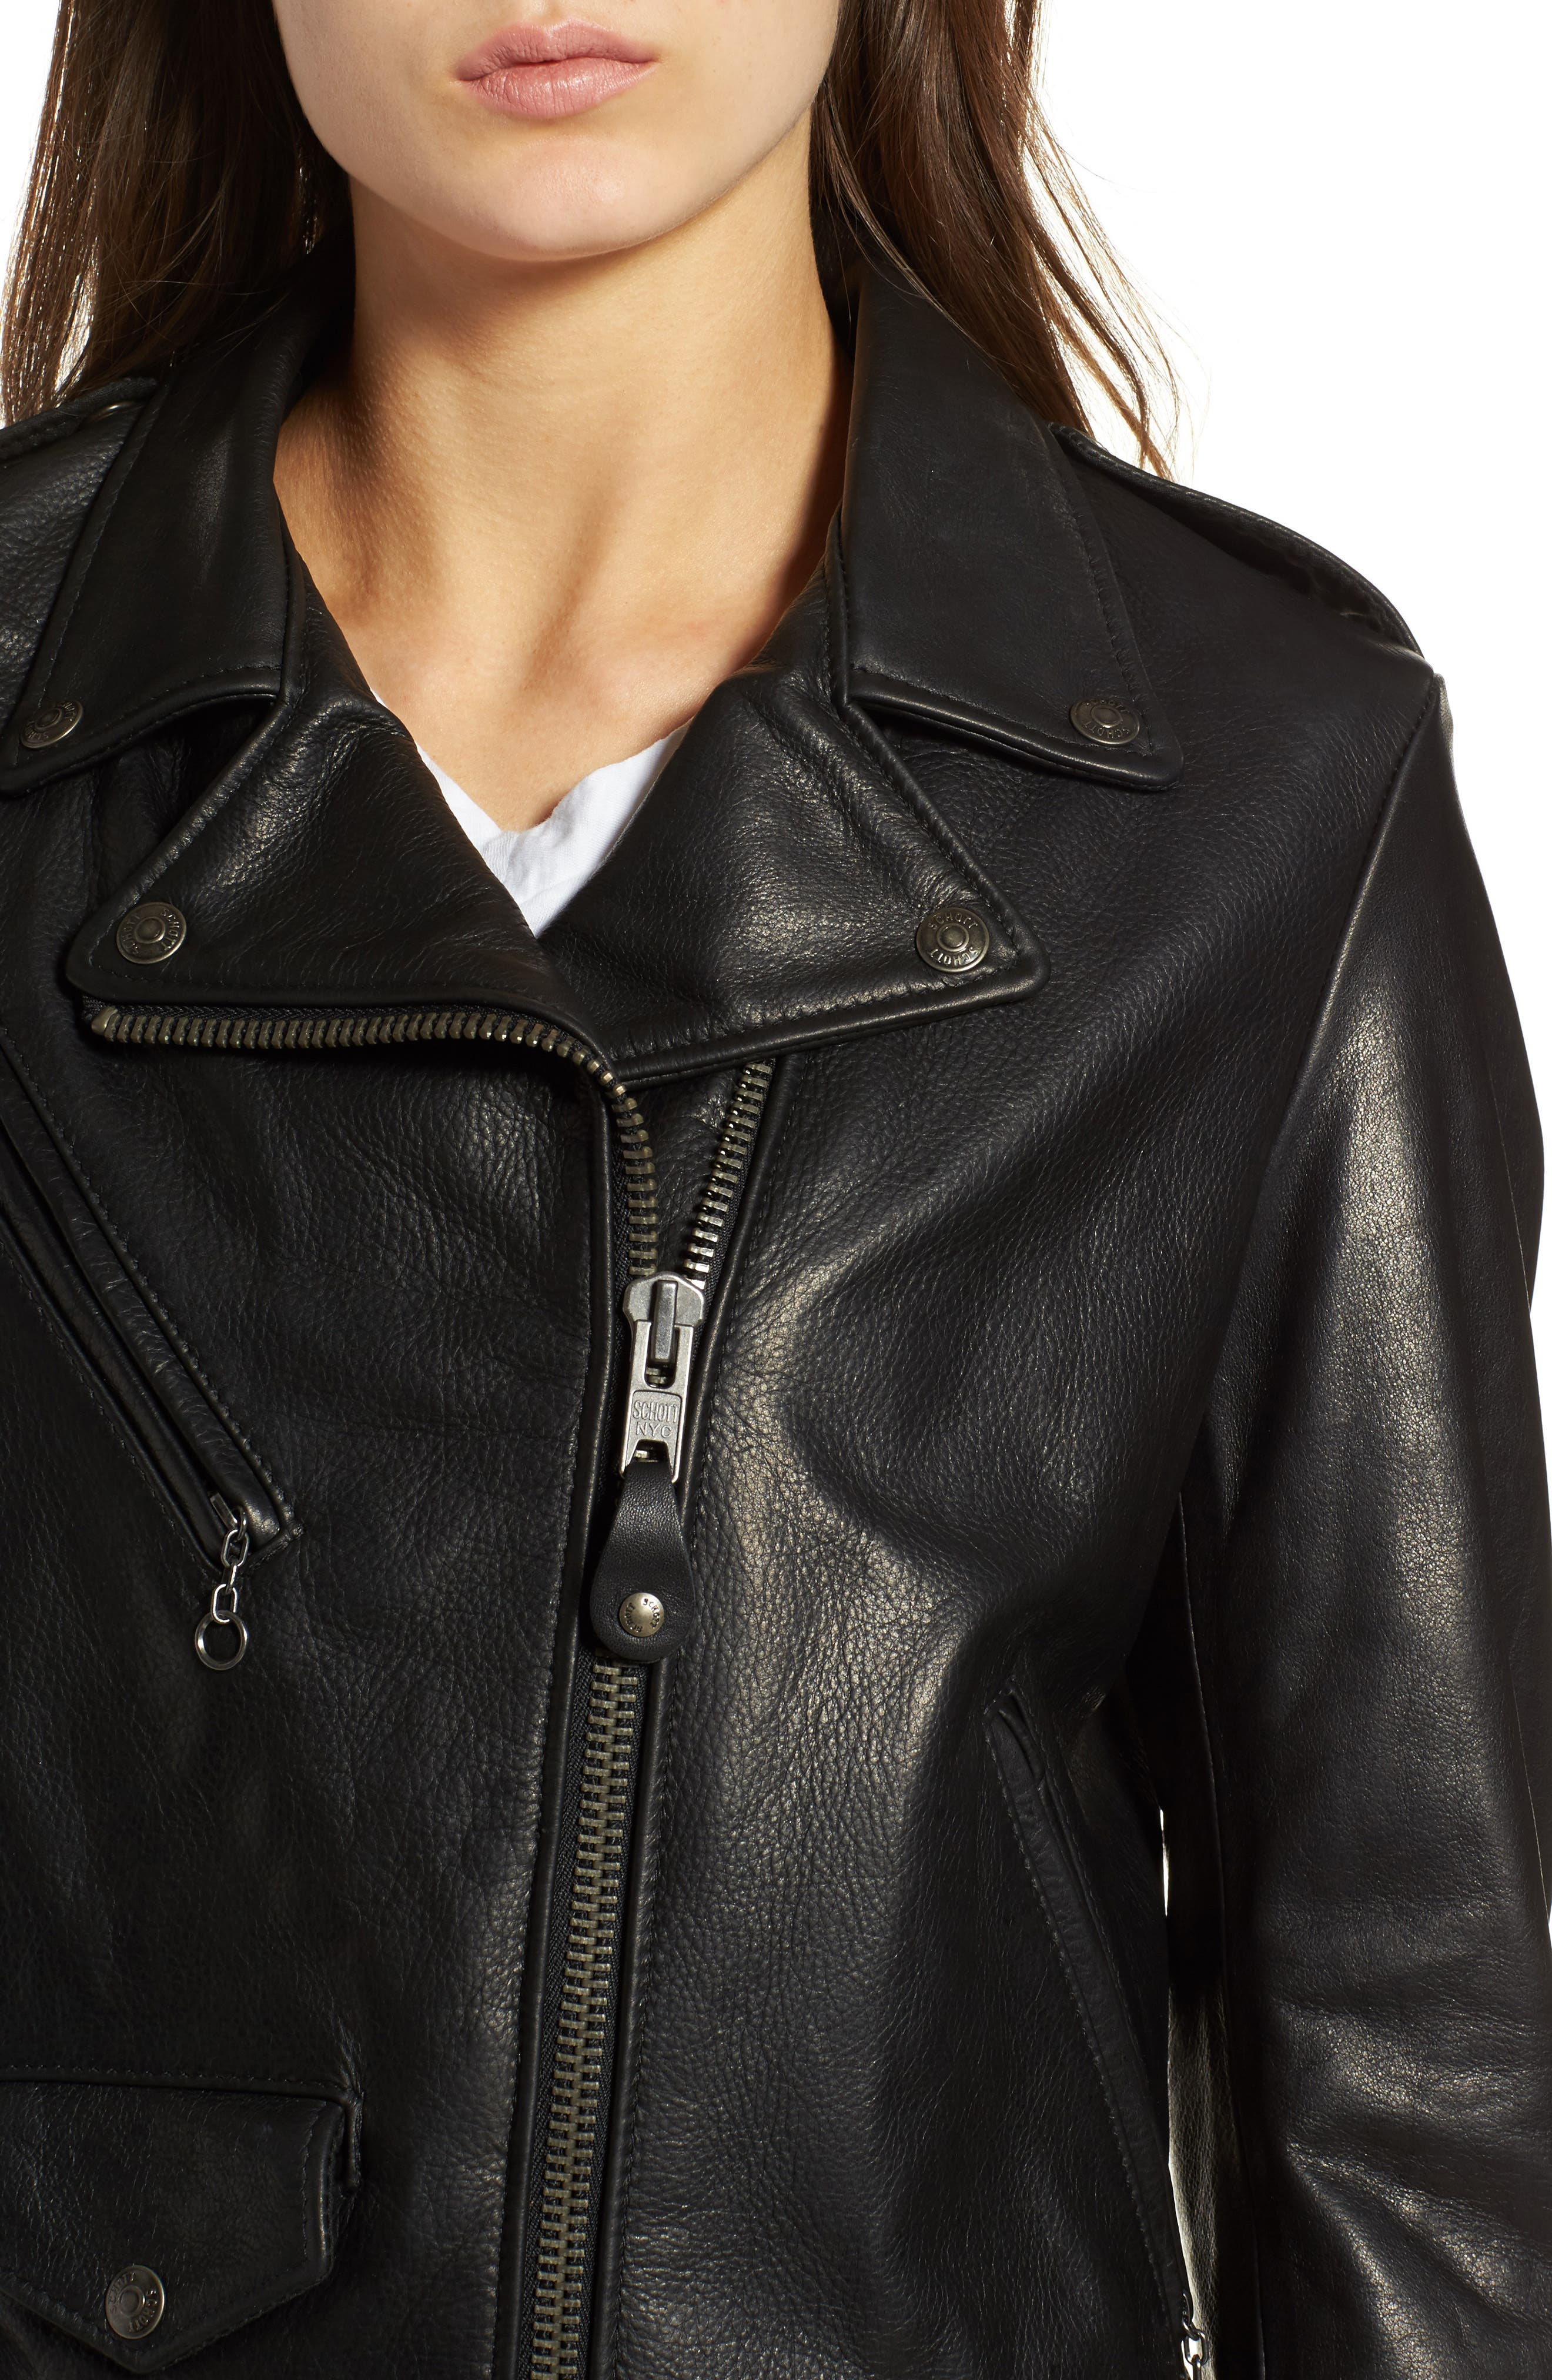 Lightweight Perfecto Leather Jacket,                             Alternate thumbnail 4, color,                             BLACK